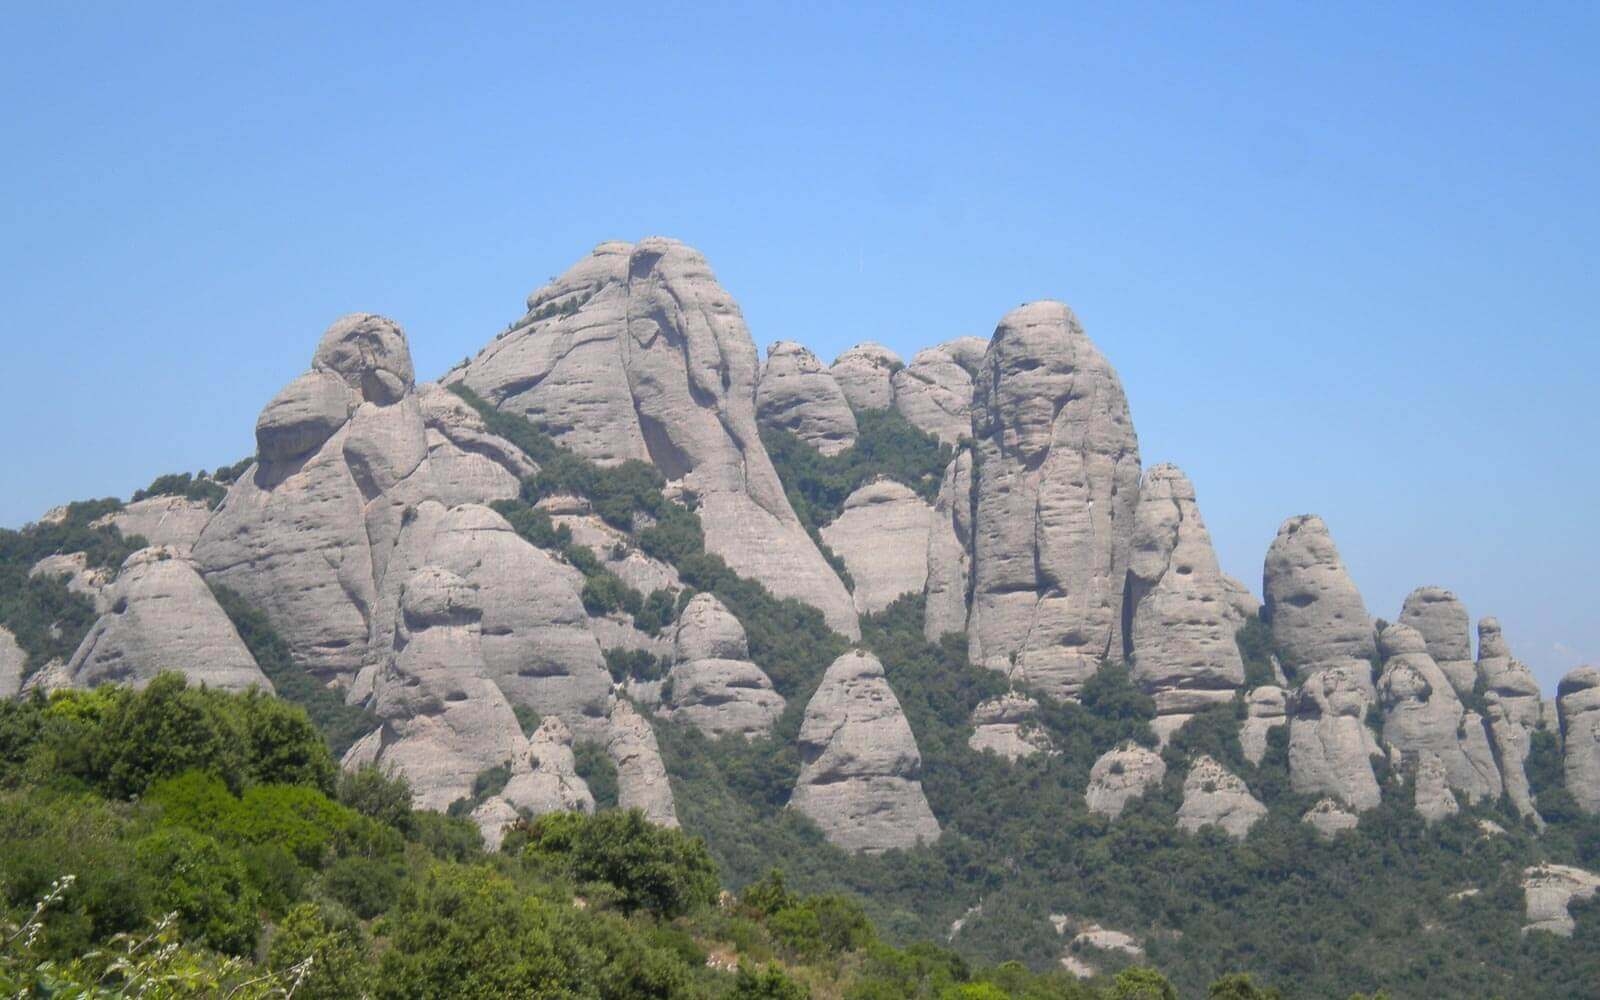 a view of the jagged mountains of montserrat near barcelona